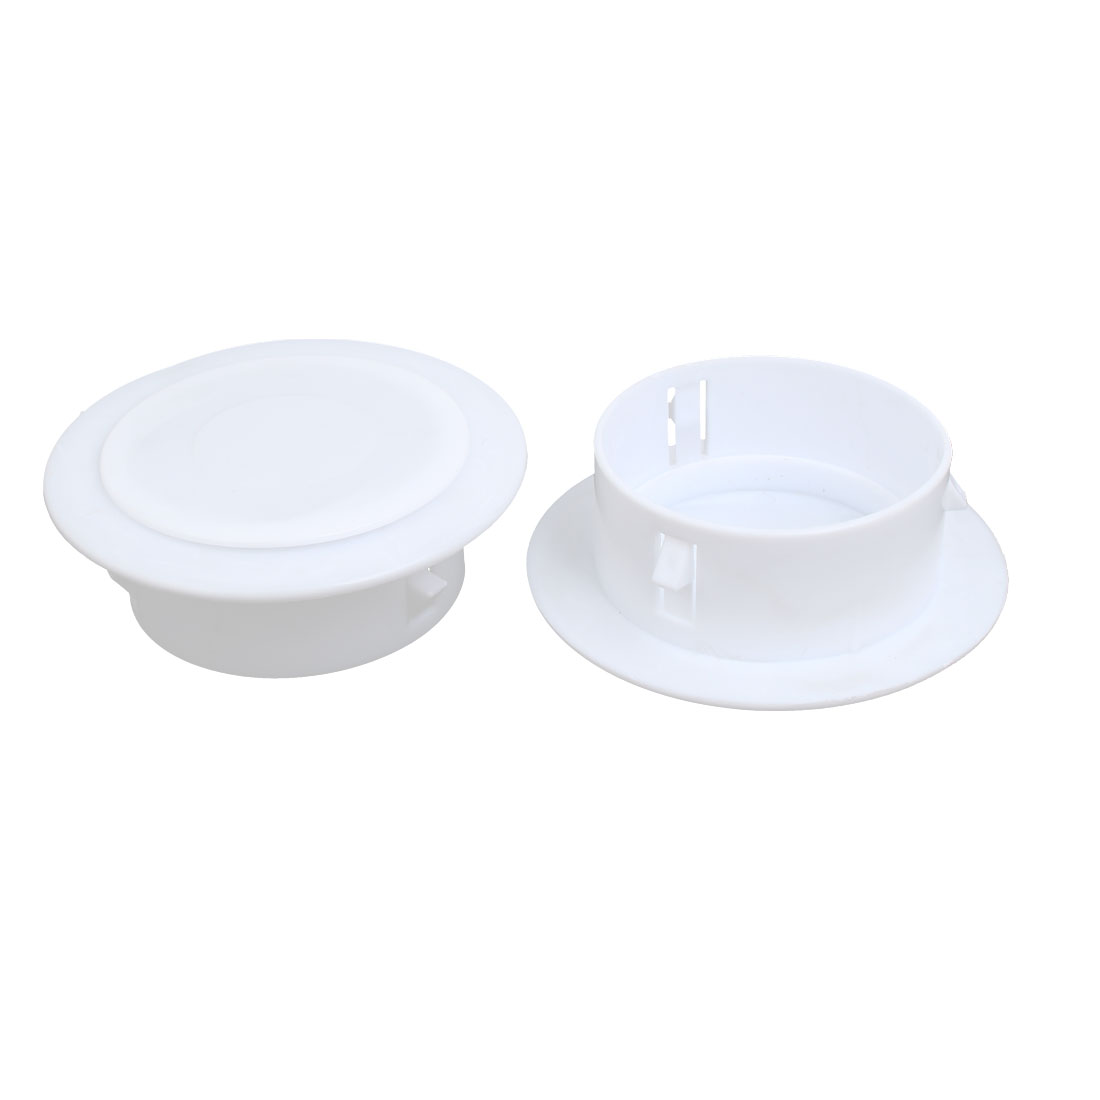 115mmx40mm Plastic Air Conditioning Wall Hole Cover White 2pcs